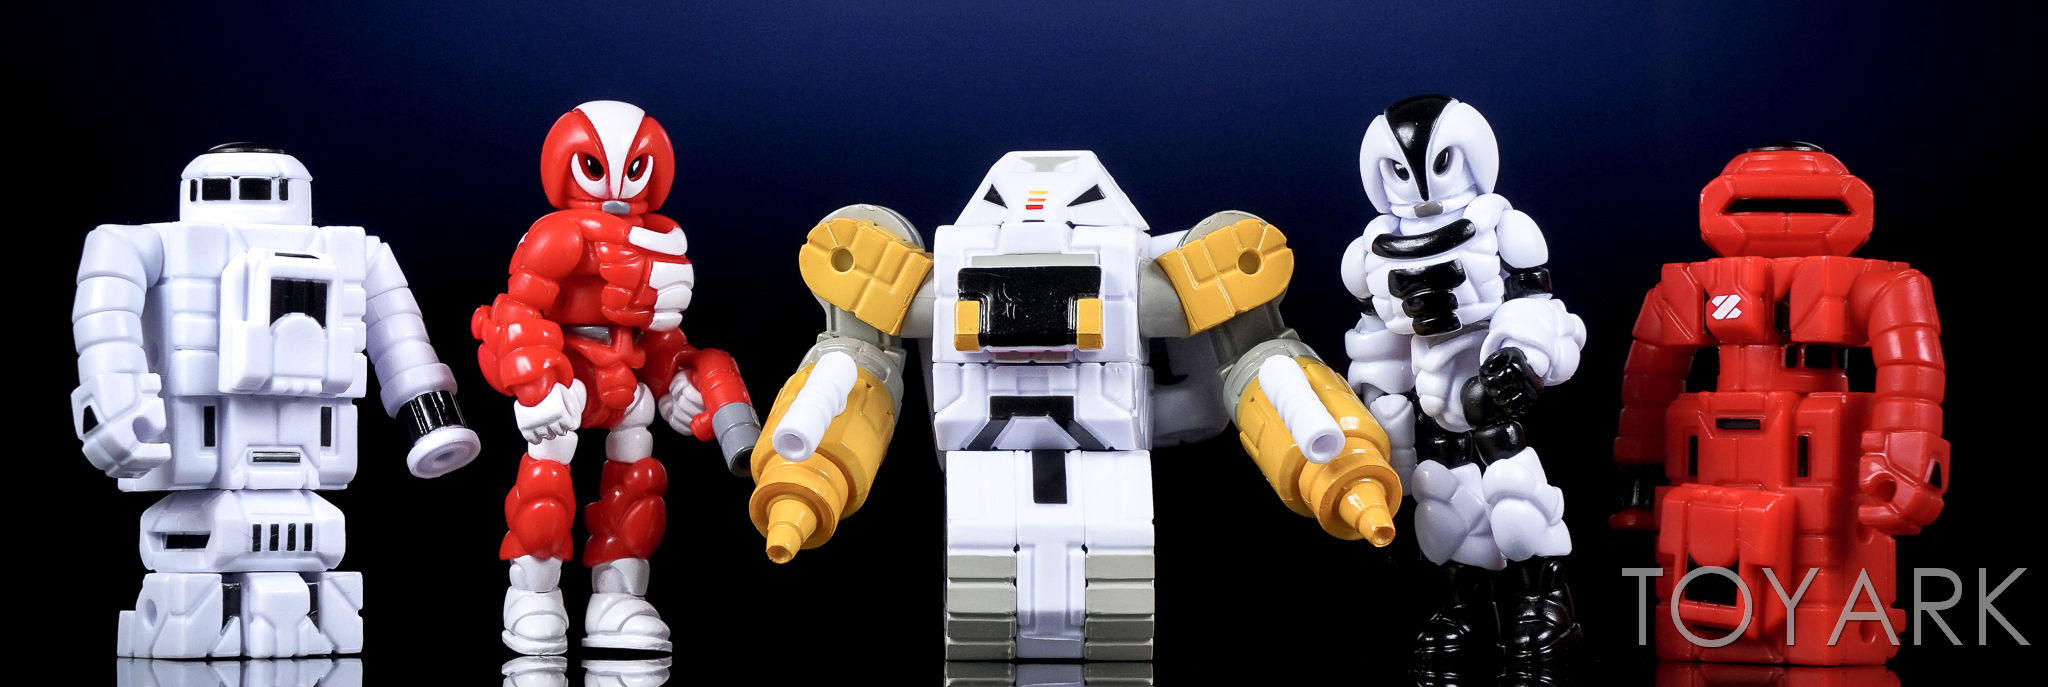 http://news.toyark.com/wp-content/uploads/sites/4/2016/10/Toyfinity-Roboforce-and-Zeroids-046.jpg